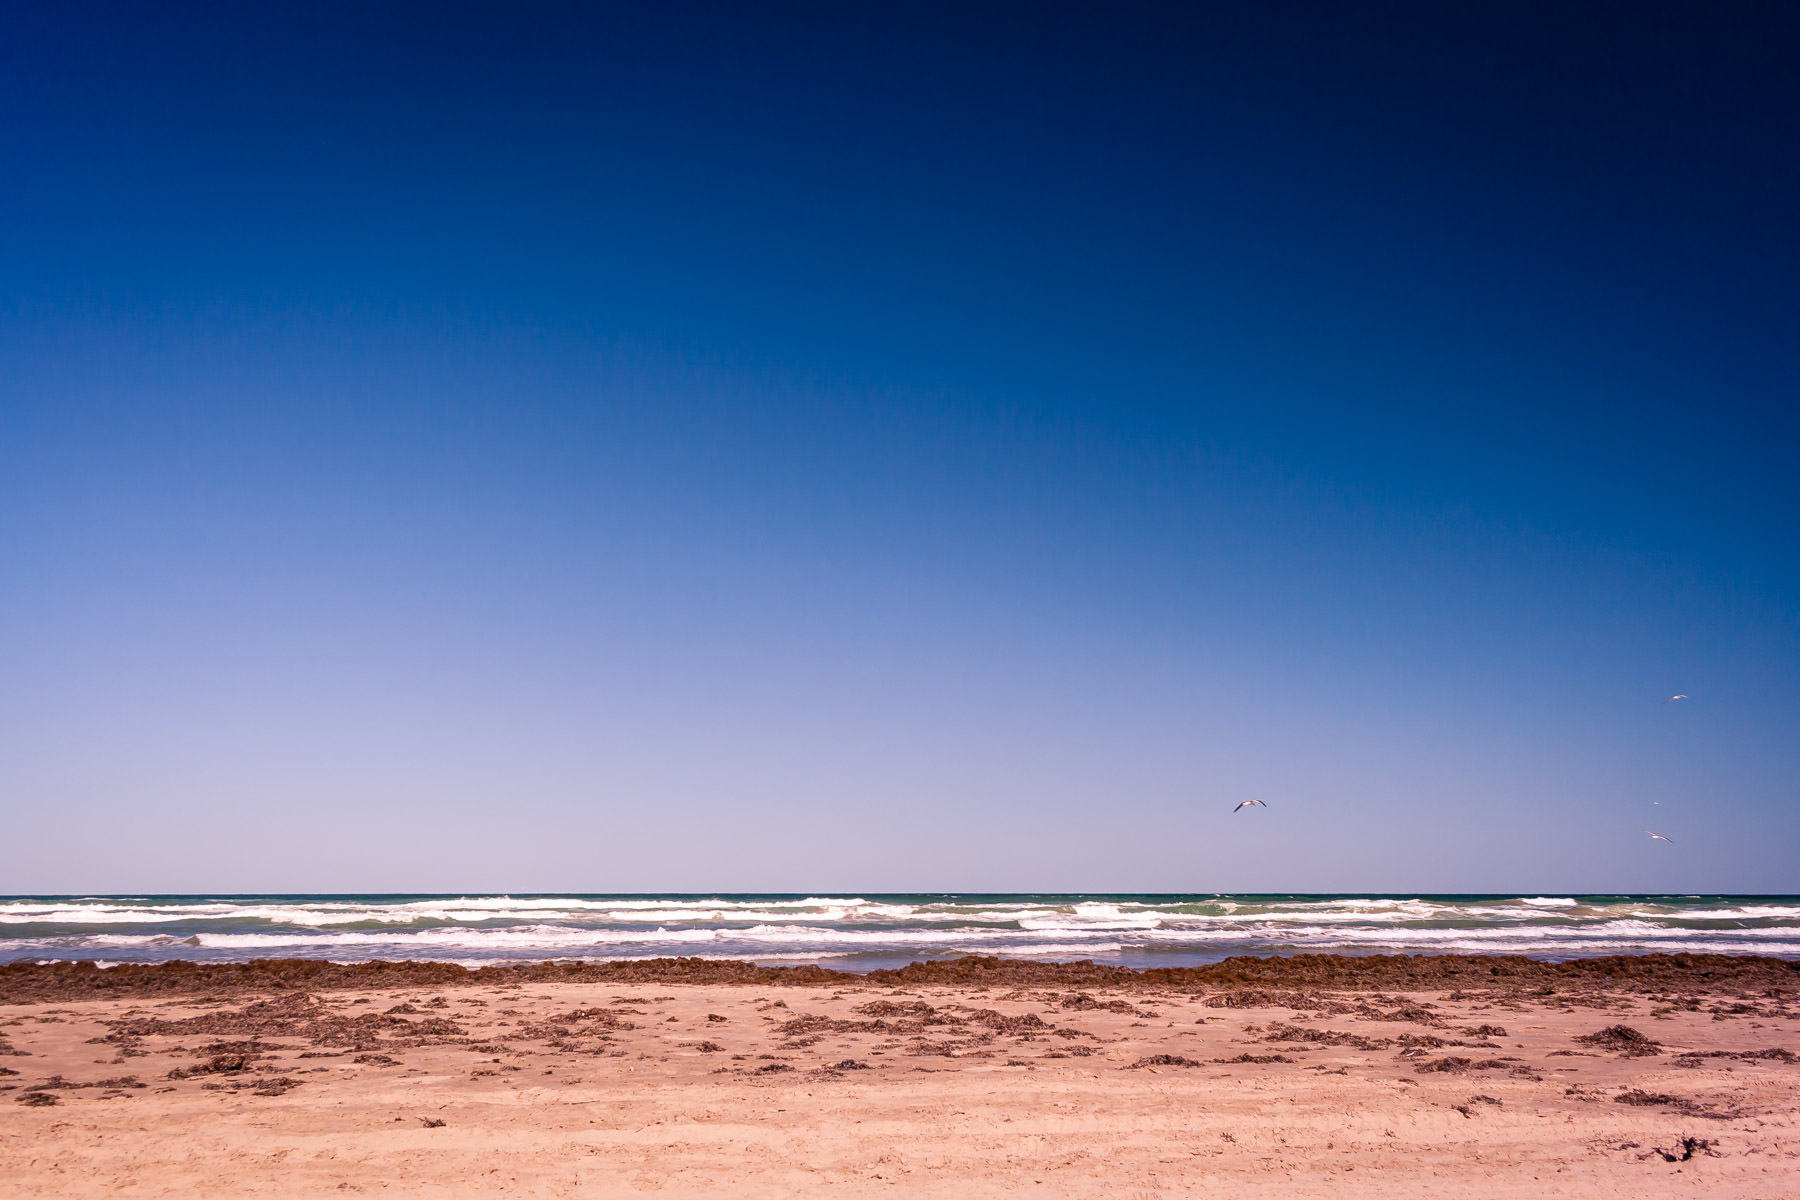 The Gulf of Mexico as seen from South Padre Island, Texas.